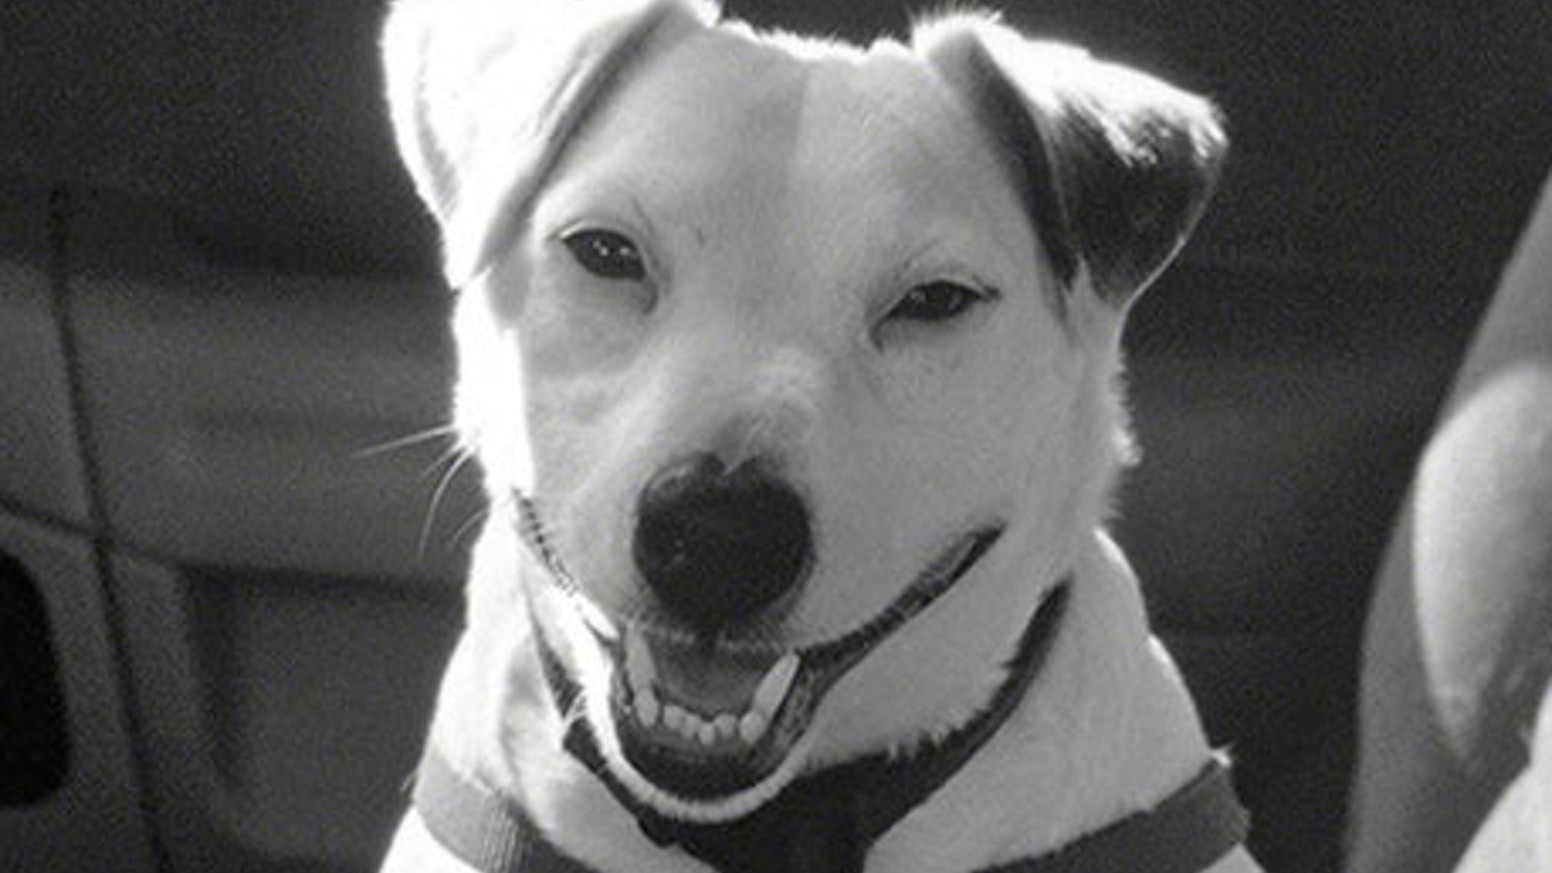 A photographer lends his voice to his dog, who recounts his narrow escape from death, then settles the question: Who rescued who? http://www.speakuptalkradio.com/bob-soltys-speaks-up/